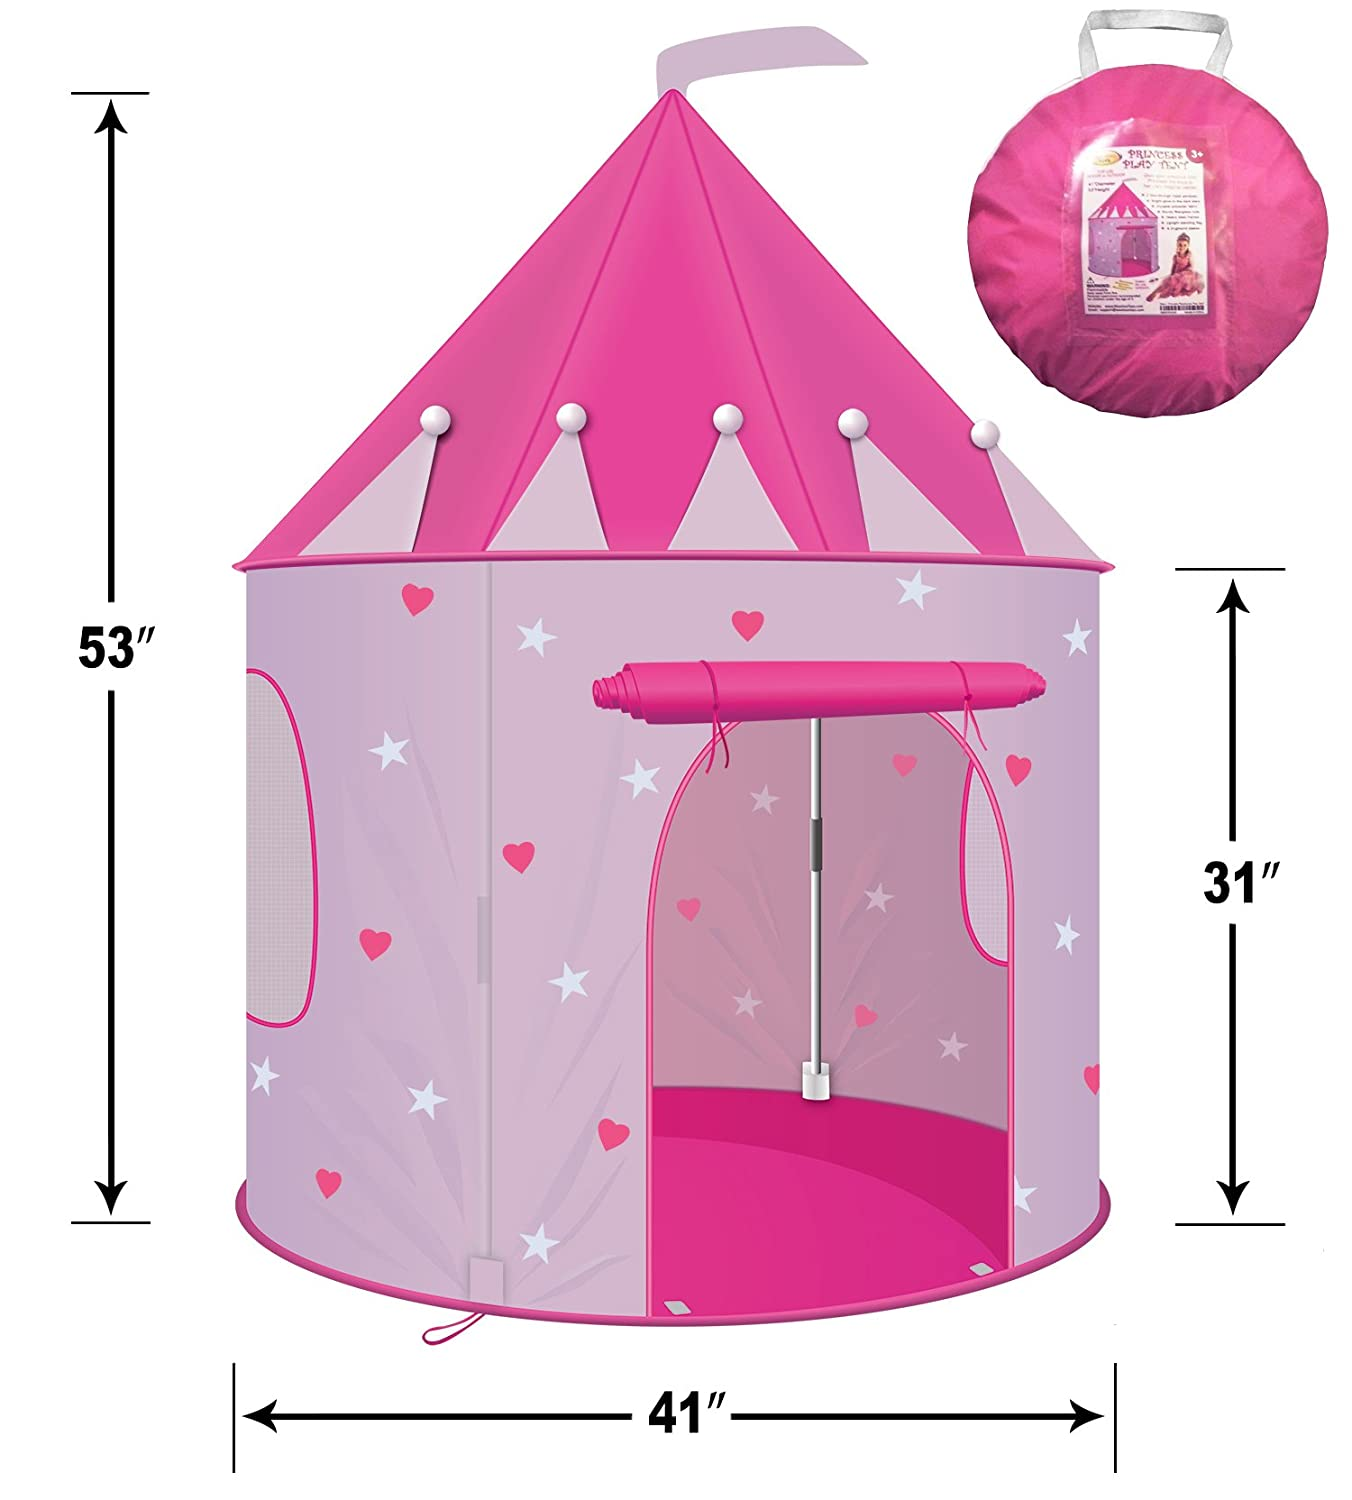 CPSIA Compliant Children Play Tent - Girl's Pink Princess Castle Play Tent Playhouse for Kids- Lightweight and Portable for Indoor or Outdoor Use With Stakes - Glow-in-the-Dark Stars - by WooHoo Toys hot sale 1000g dynamic amazing diy educational toys no mess indoor magic play sand children toys mars space sand